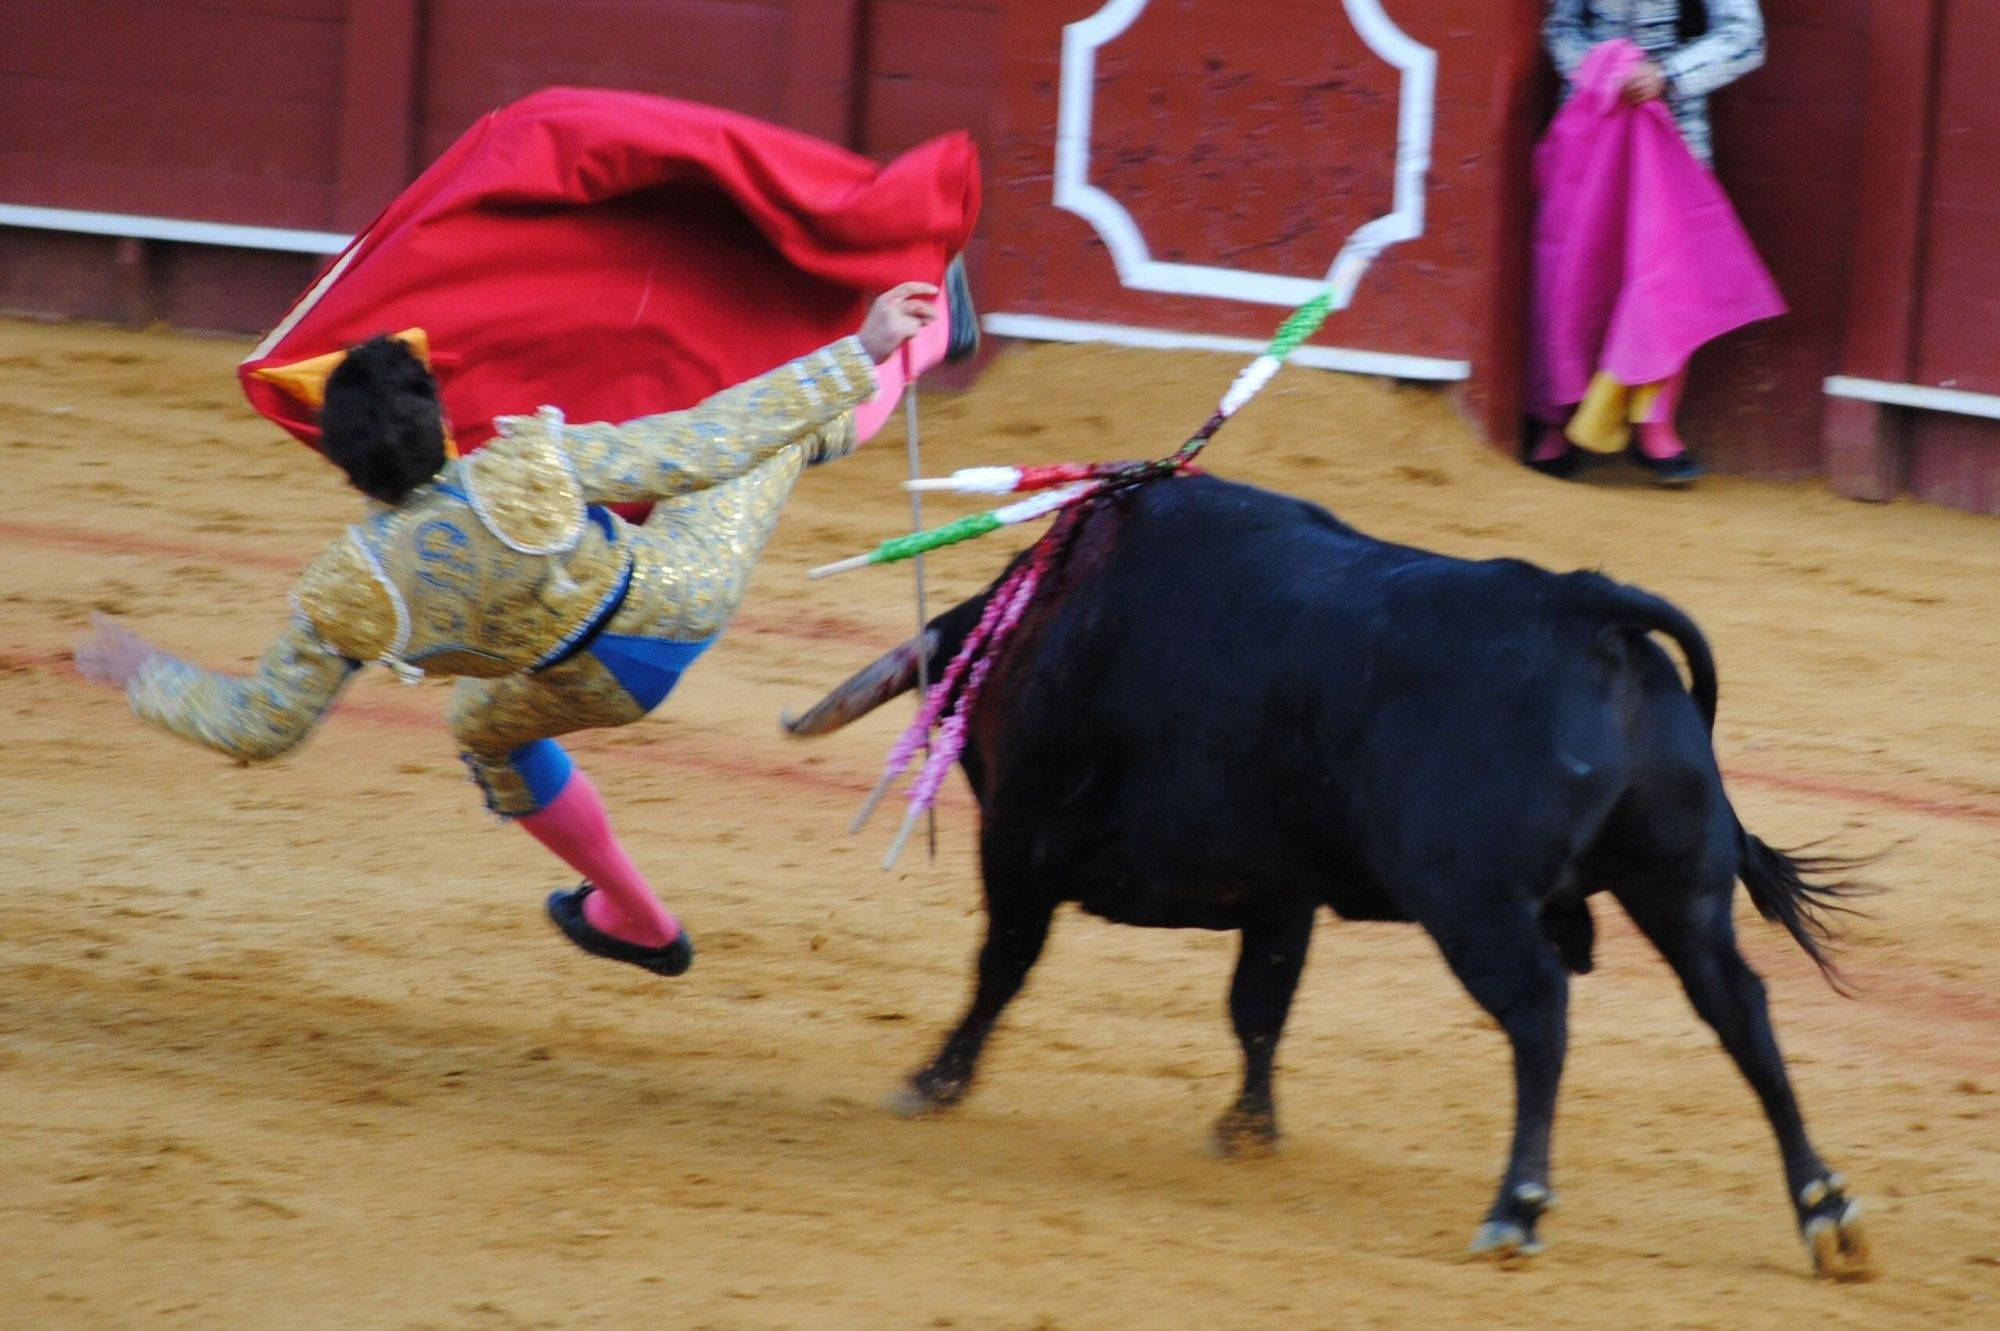 A matador is thrown by a bull at a bull fight in Seville, Spain in April.